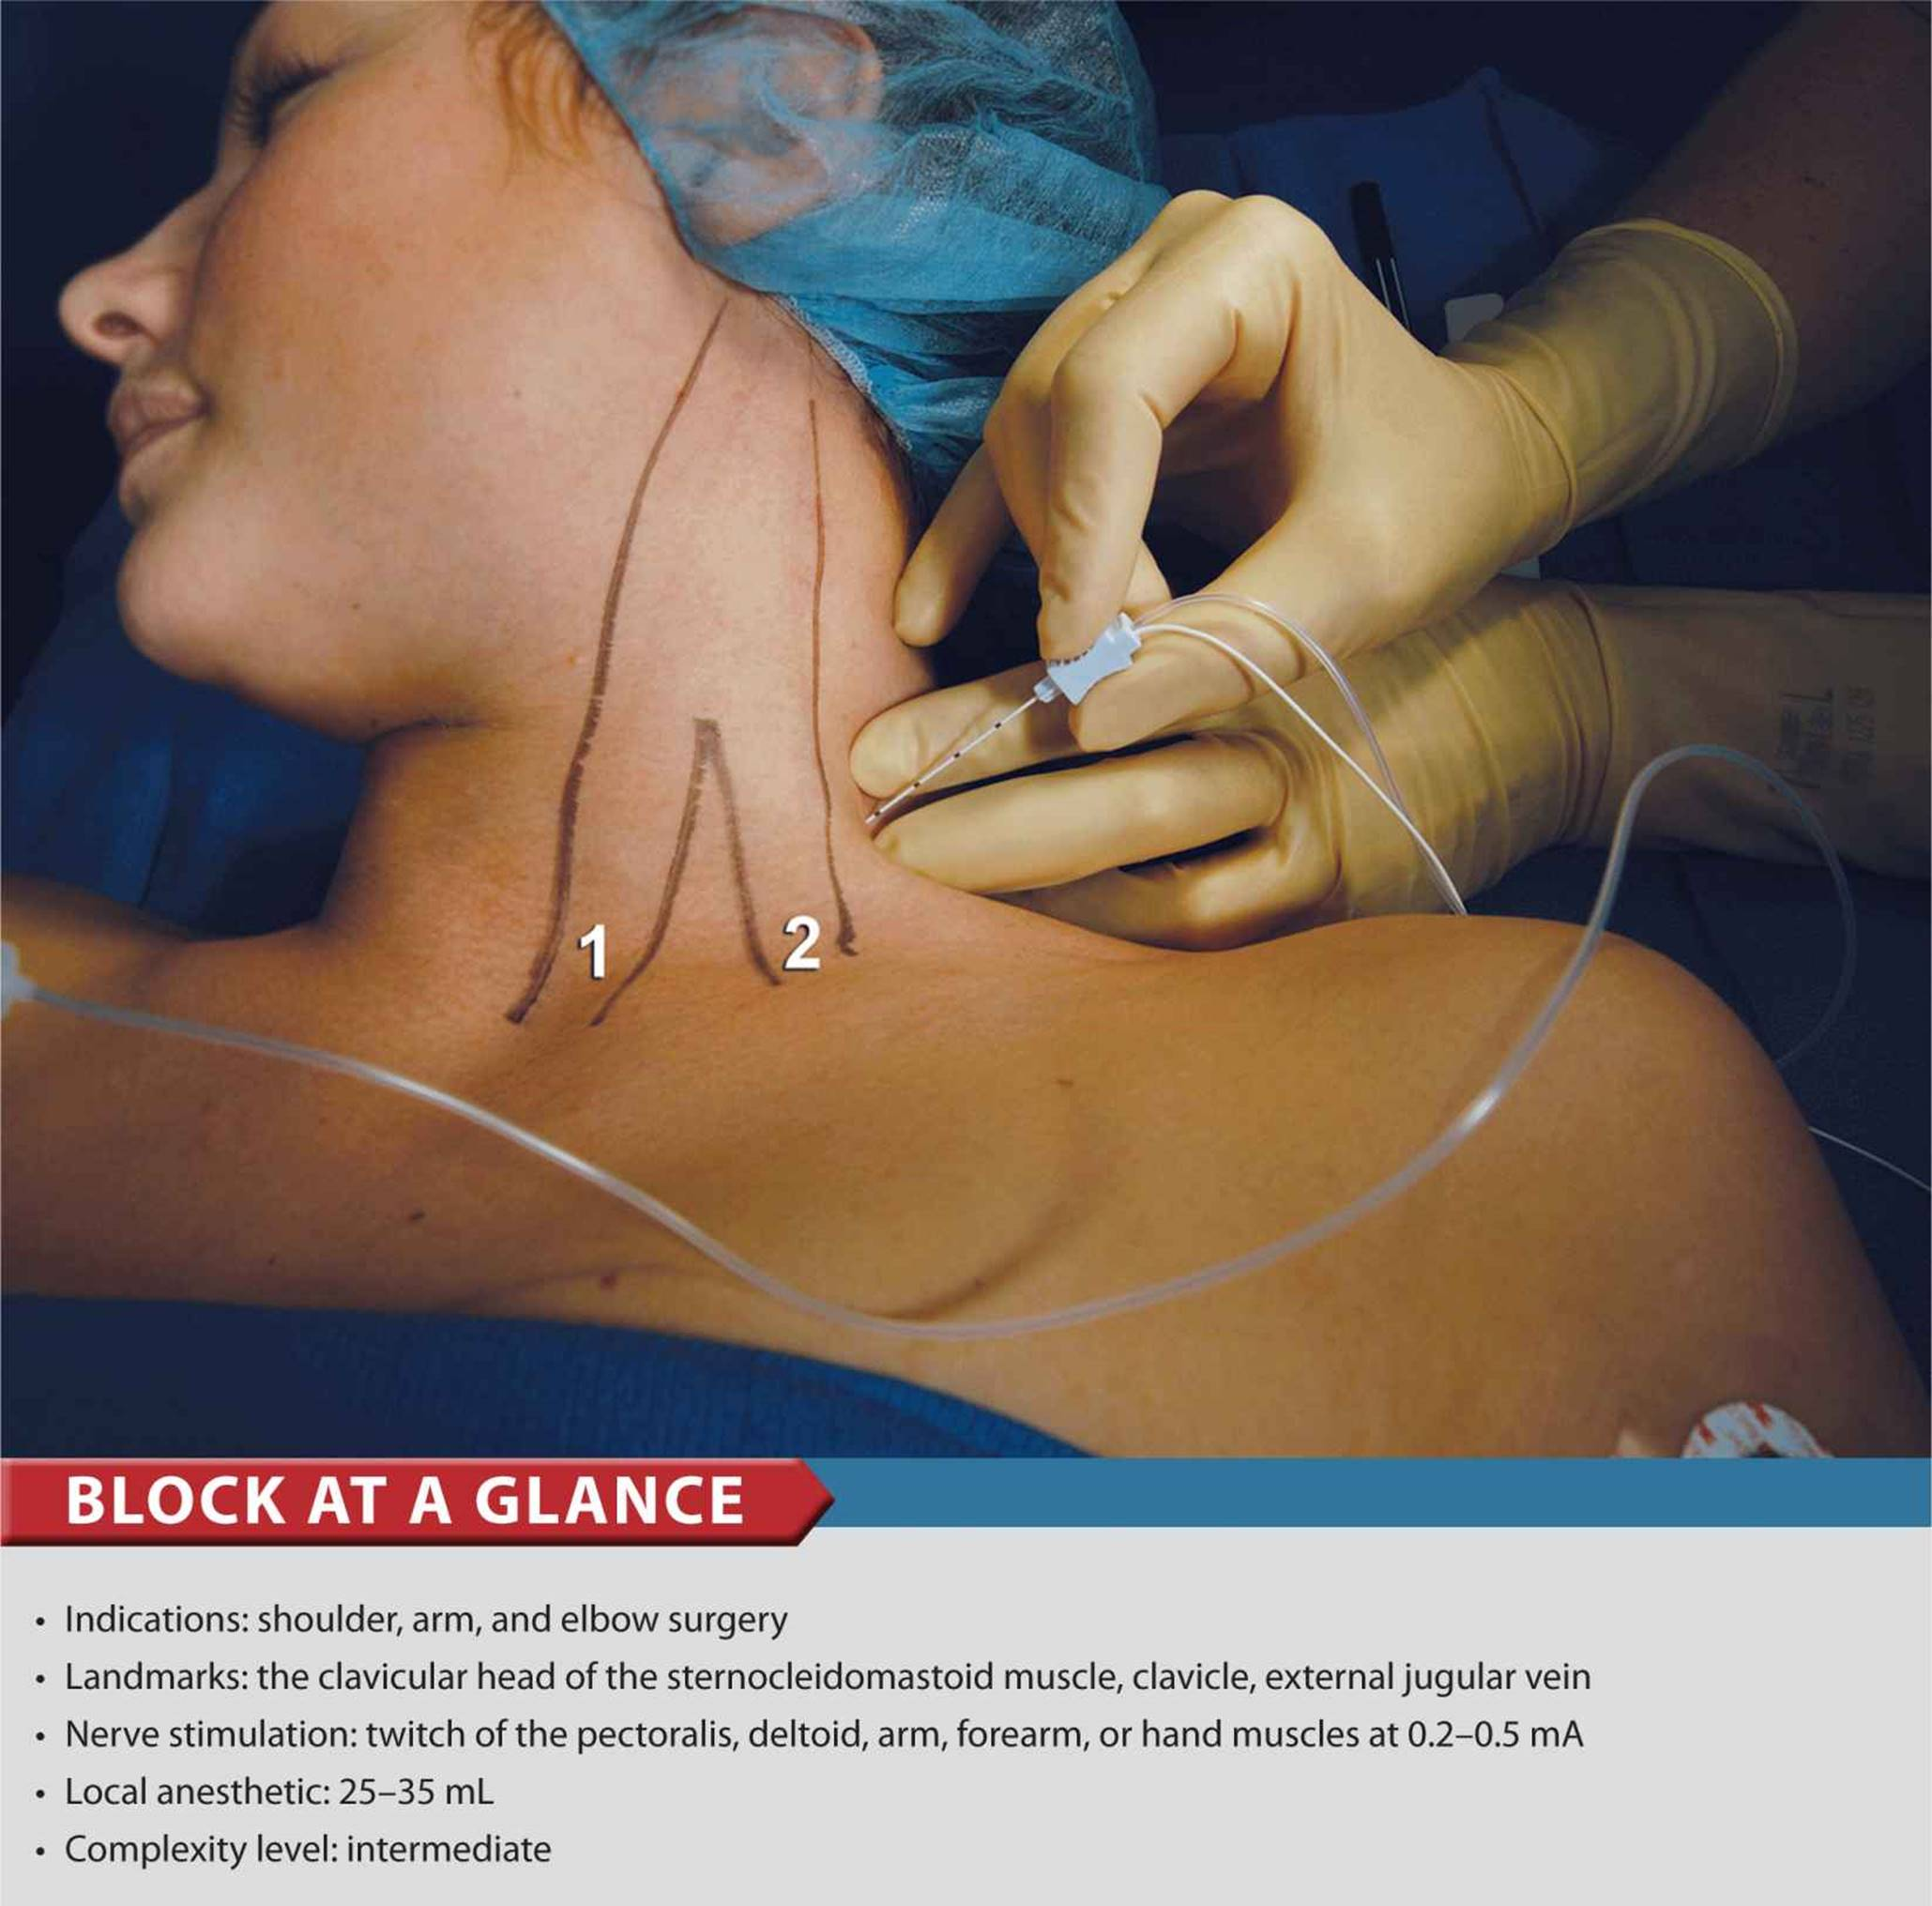 peripheral nerve block- indications and contraindications Block failure (need to supplement or induce general anesthesia) contraindications to peripheral nerve block pediatric patients, combative patients, demented patients.